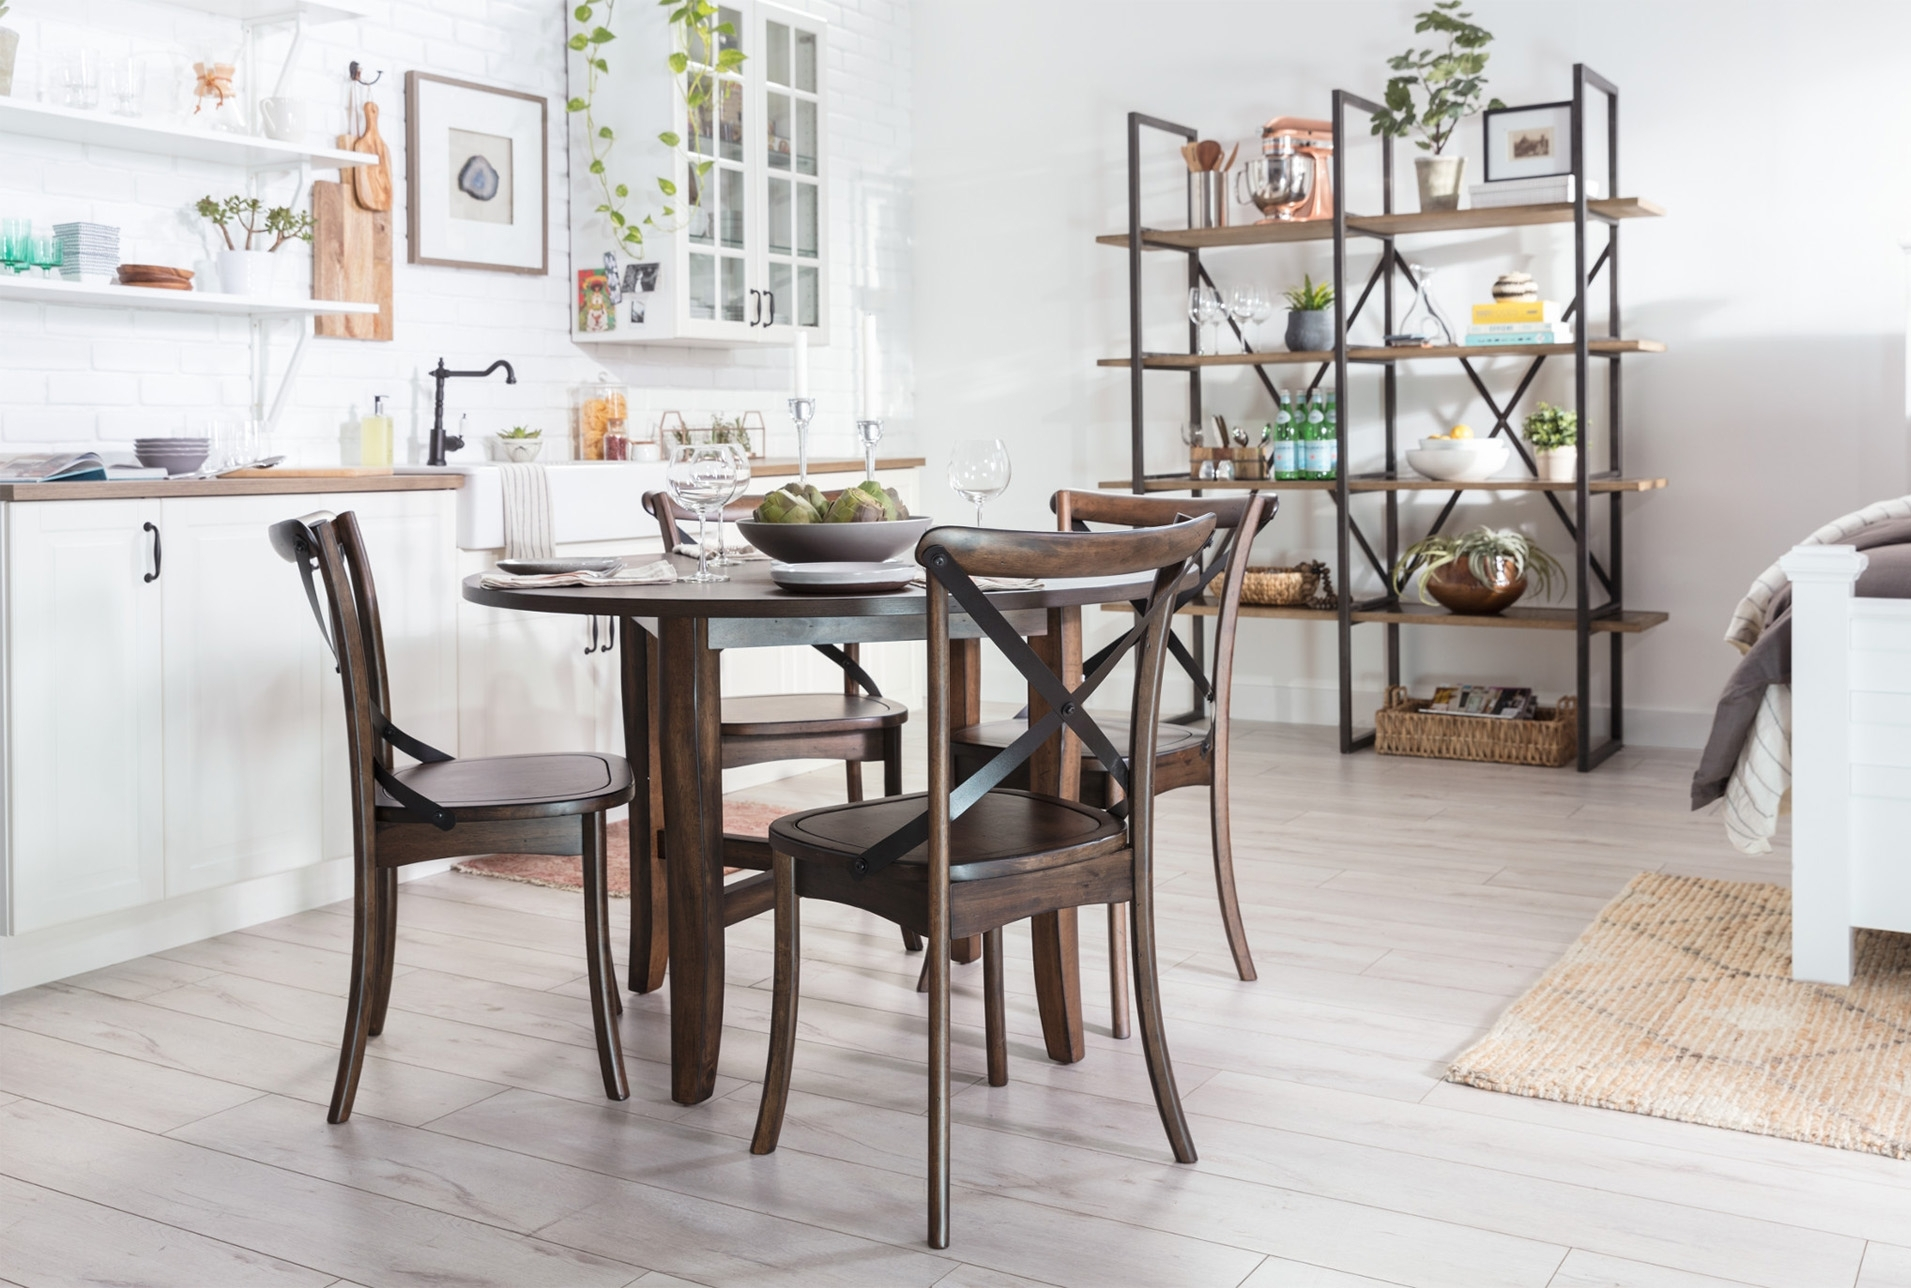 Grady 5 Piece Round Dining Set | Round Dining Set, Round Dining And Regarding Recent Grady Round Dining Tables (View 3 of 20)